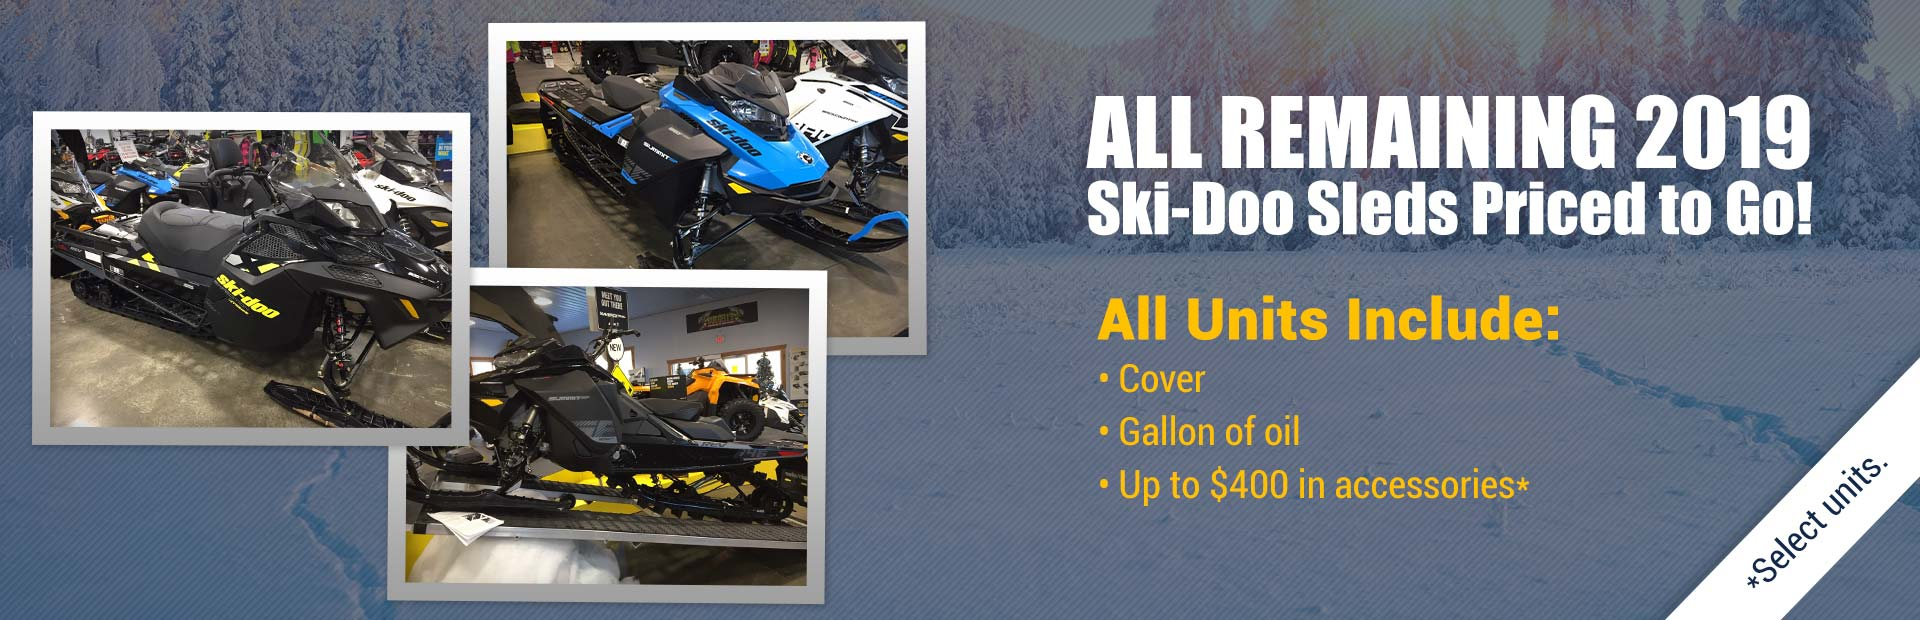 All remaining 2019 Ski-Doo sleds are priced to go!